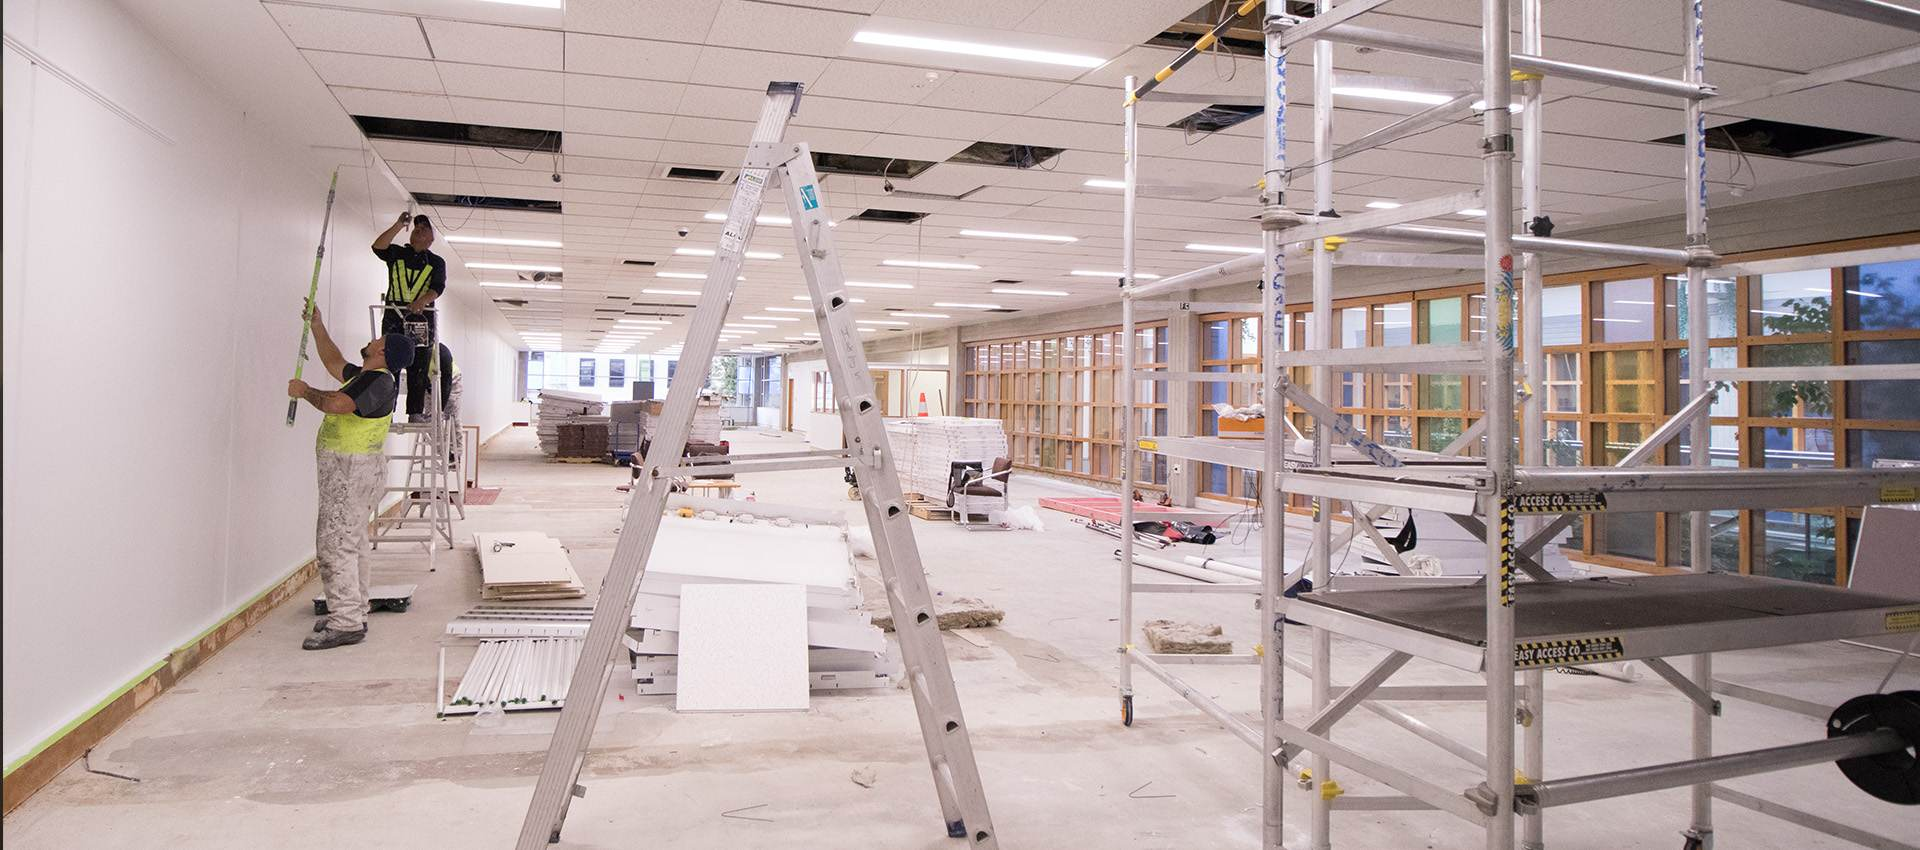 A commercial fitout in process.